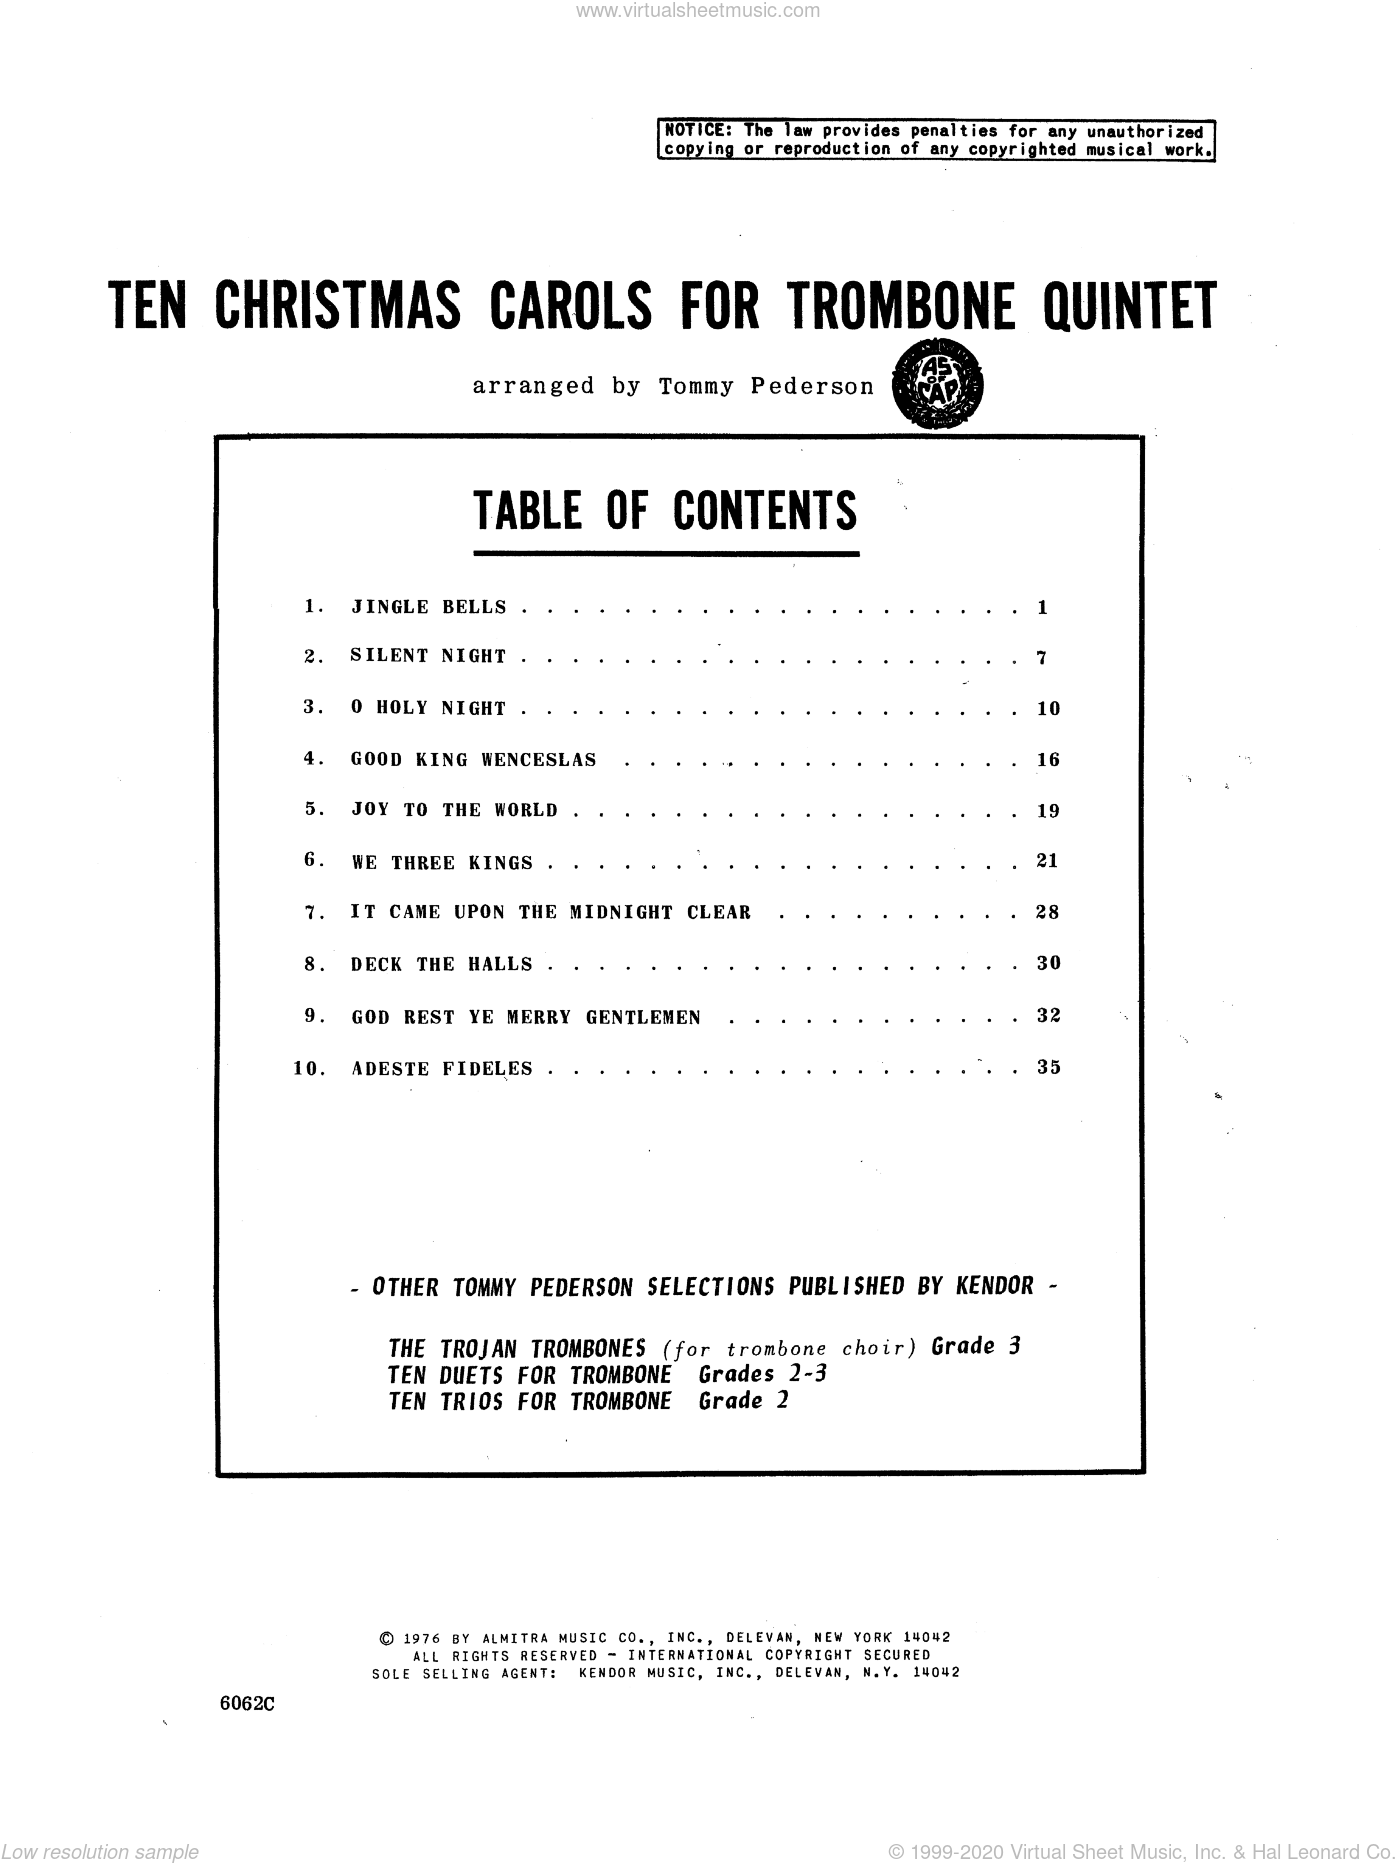 Ten Christmas Carols For Trombone Quintet/Full Score sheet music for trombone quintet by Tommy Pederson. Score Image Preview.